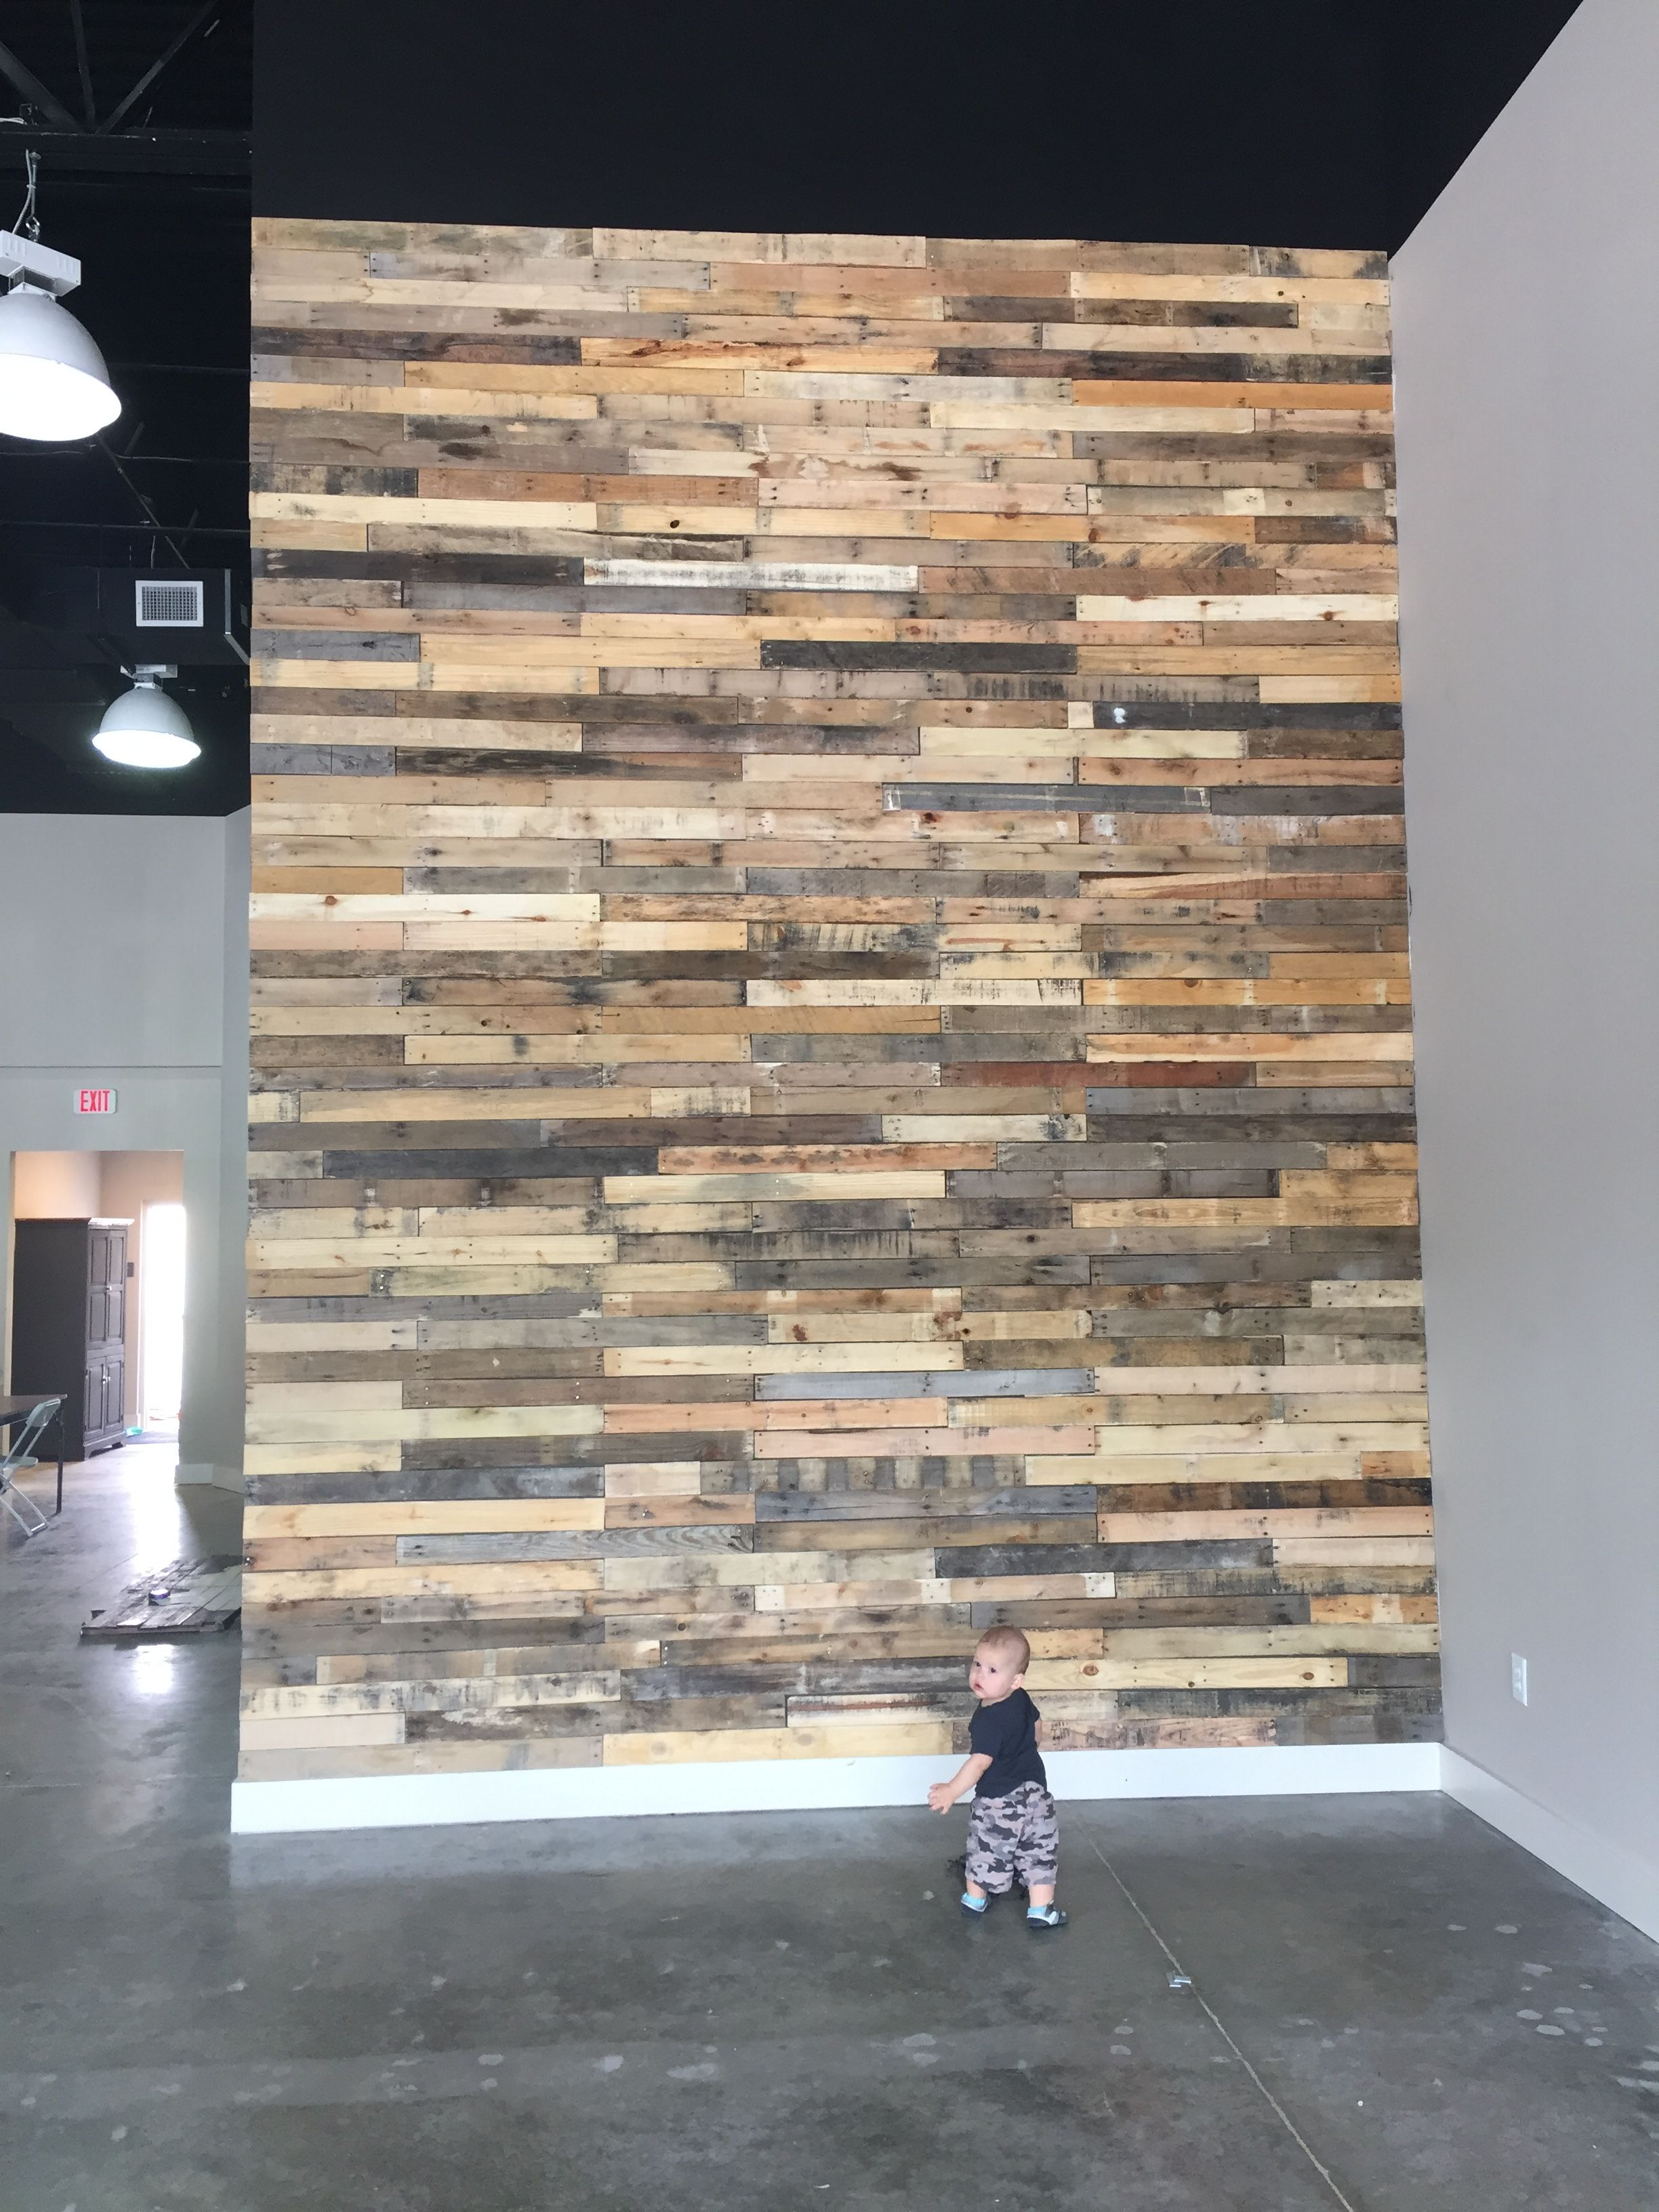 16 foot pallet wall | Stage lighting design, Pallet wall ...